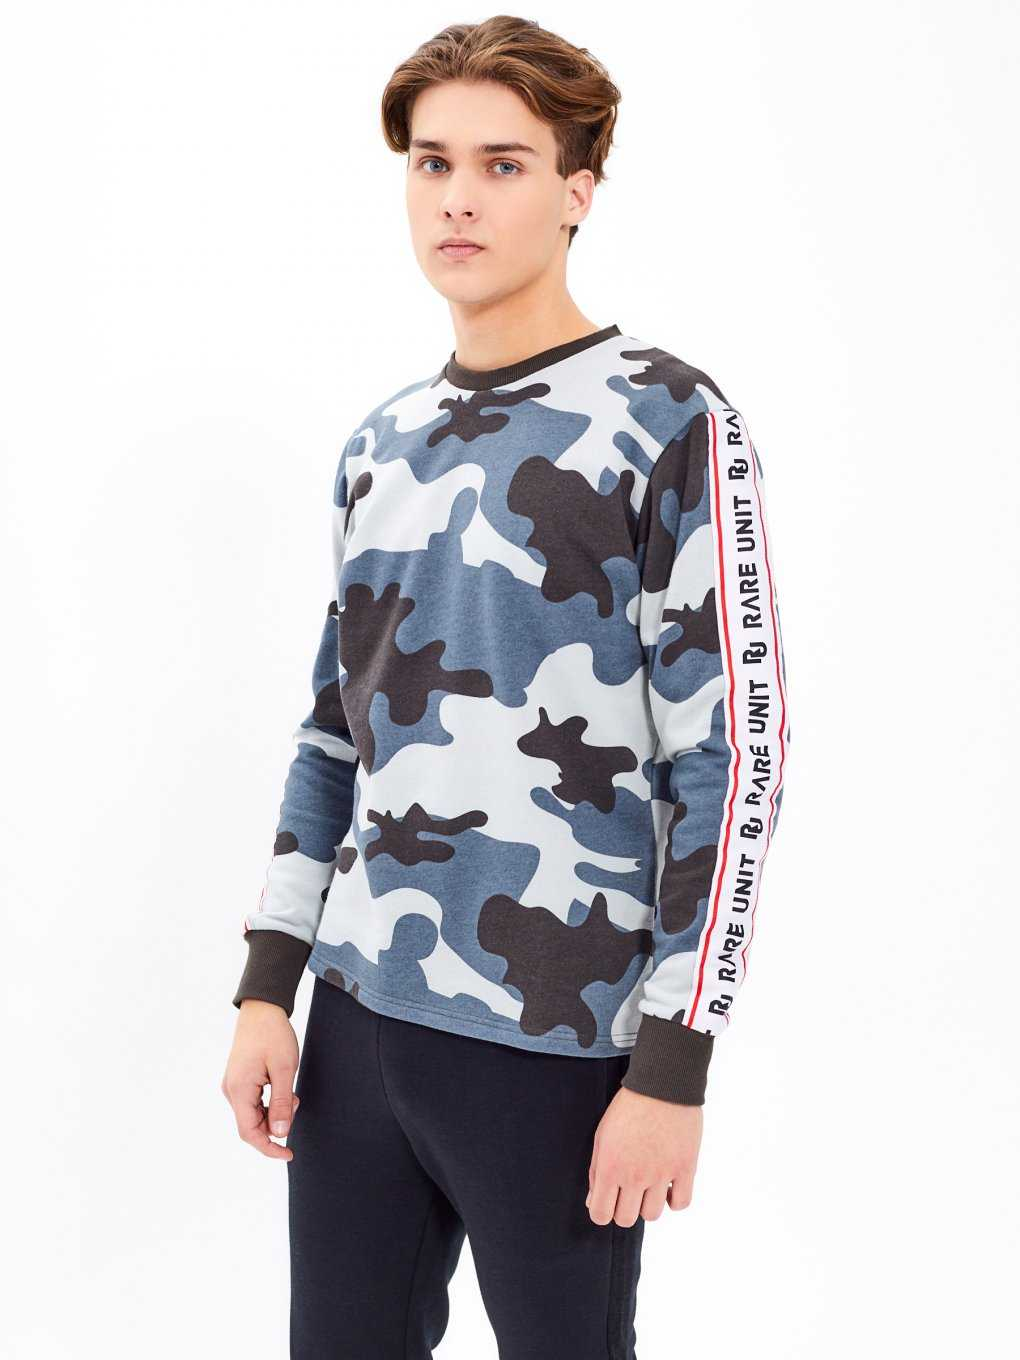 TAPED CAMO PRINT SWEATSHIRT